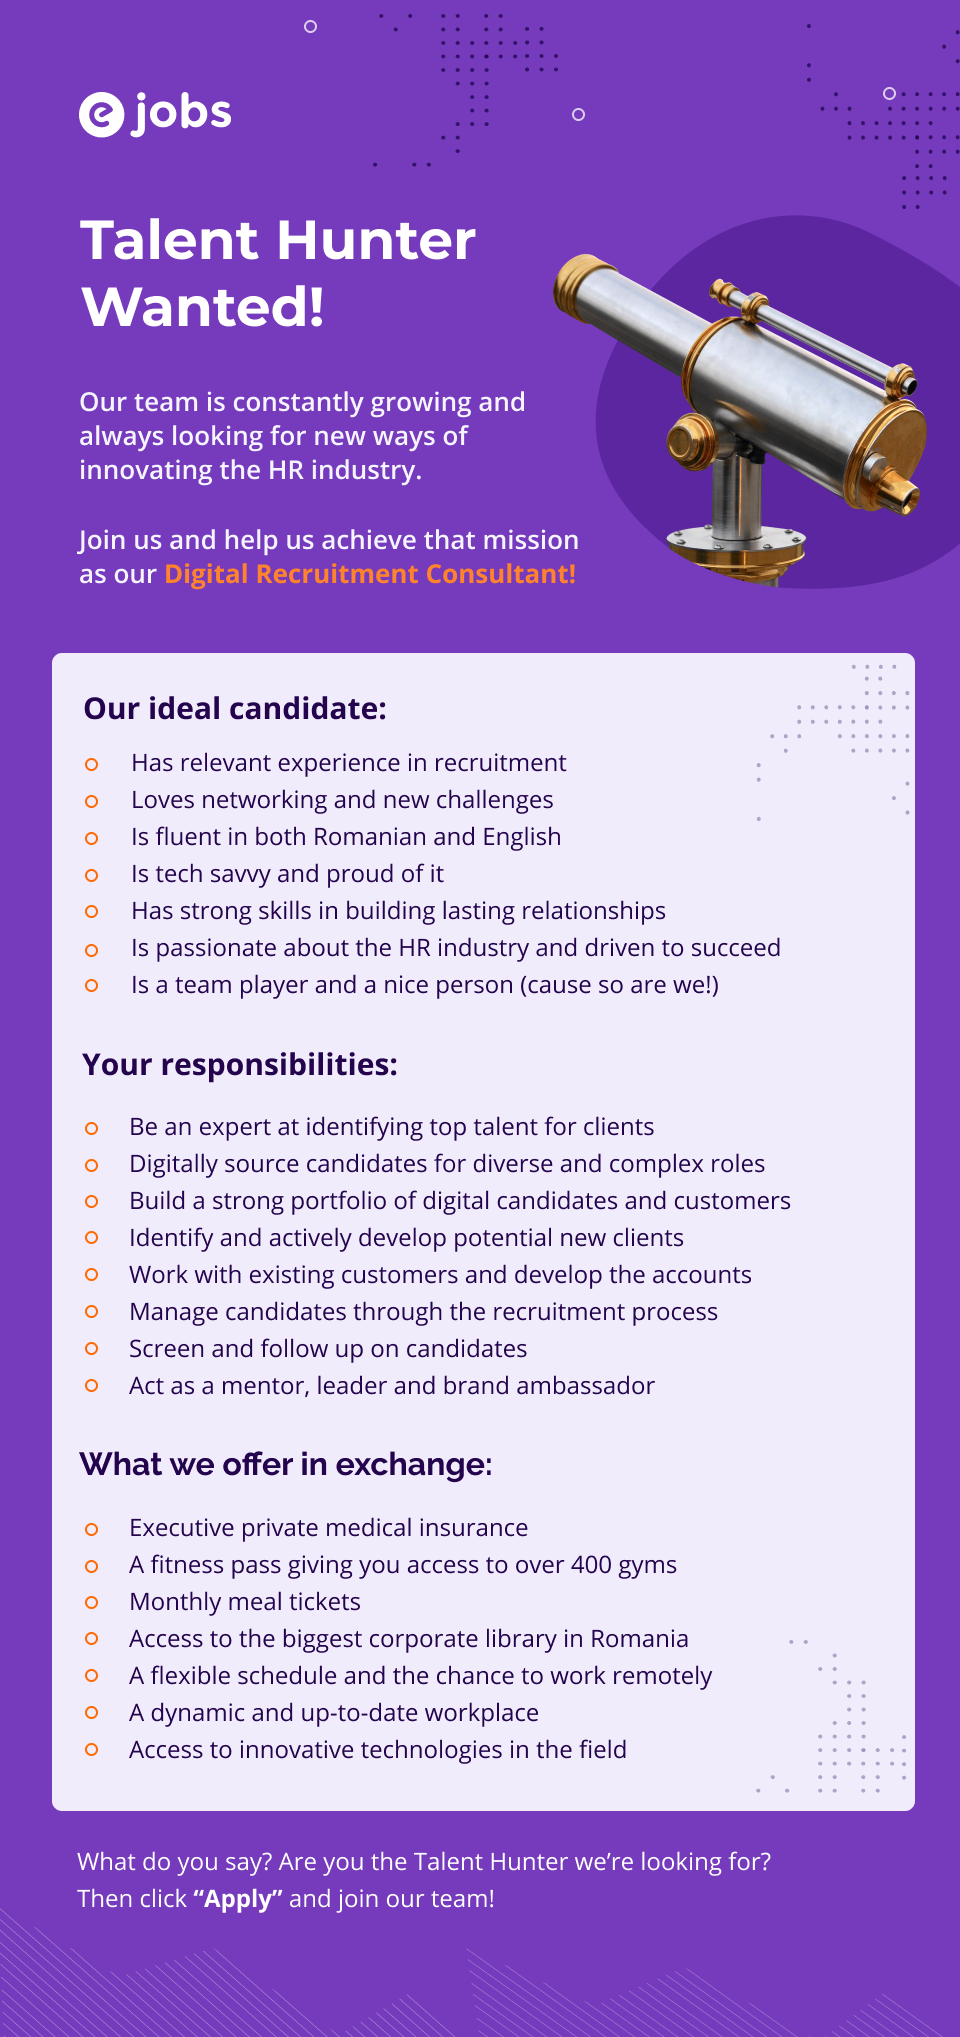 Digital Recruitment Consultant